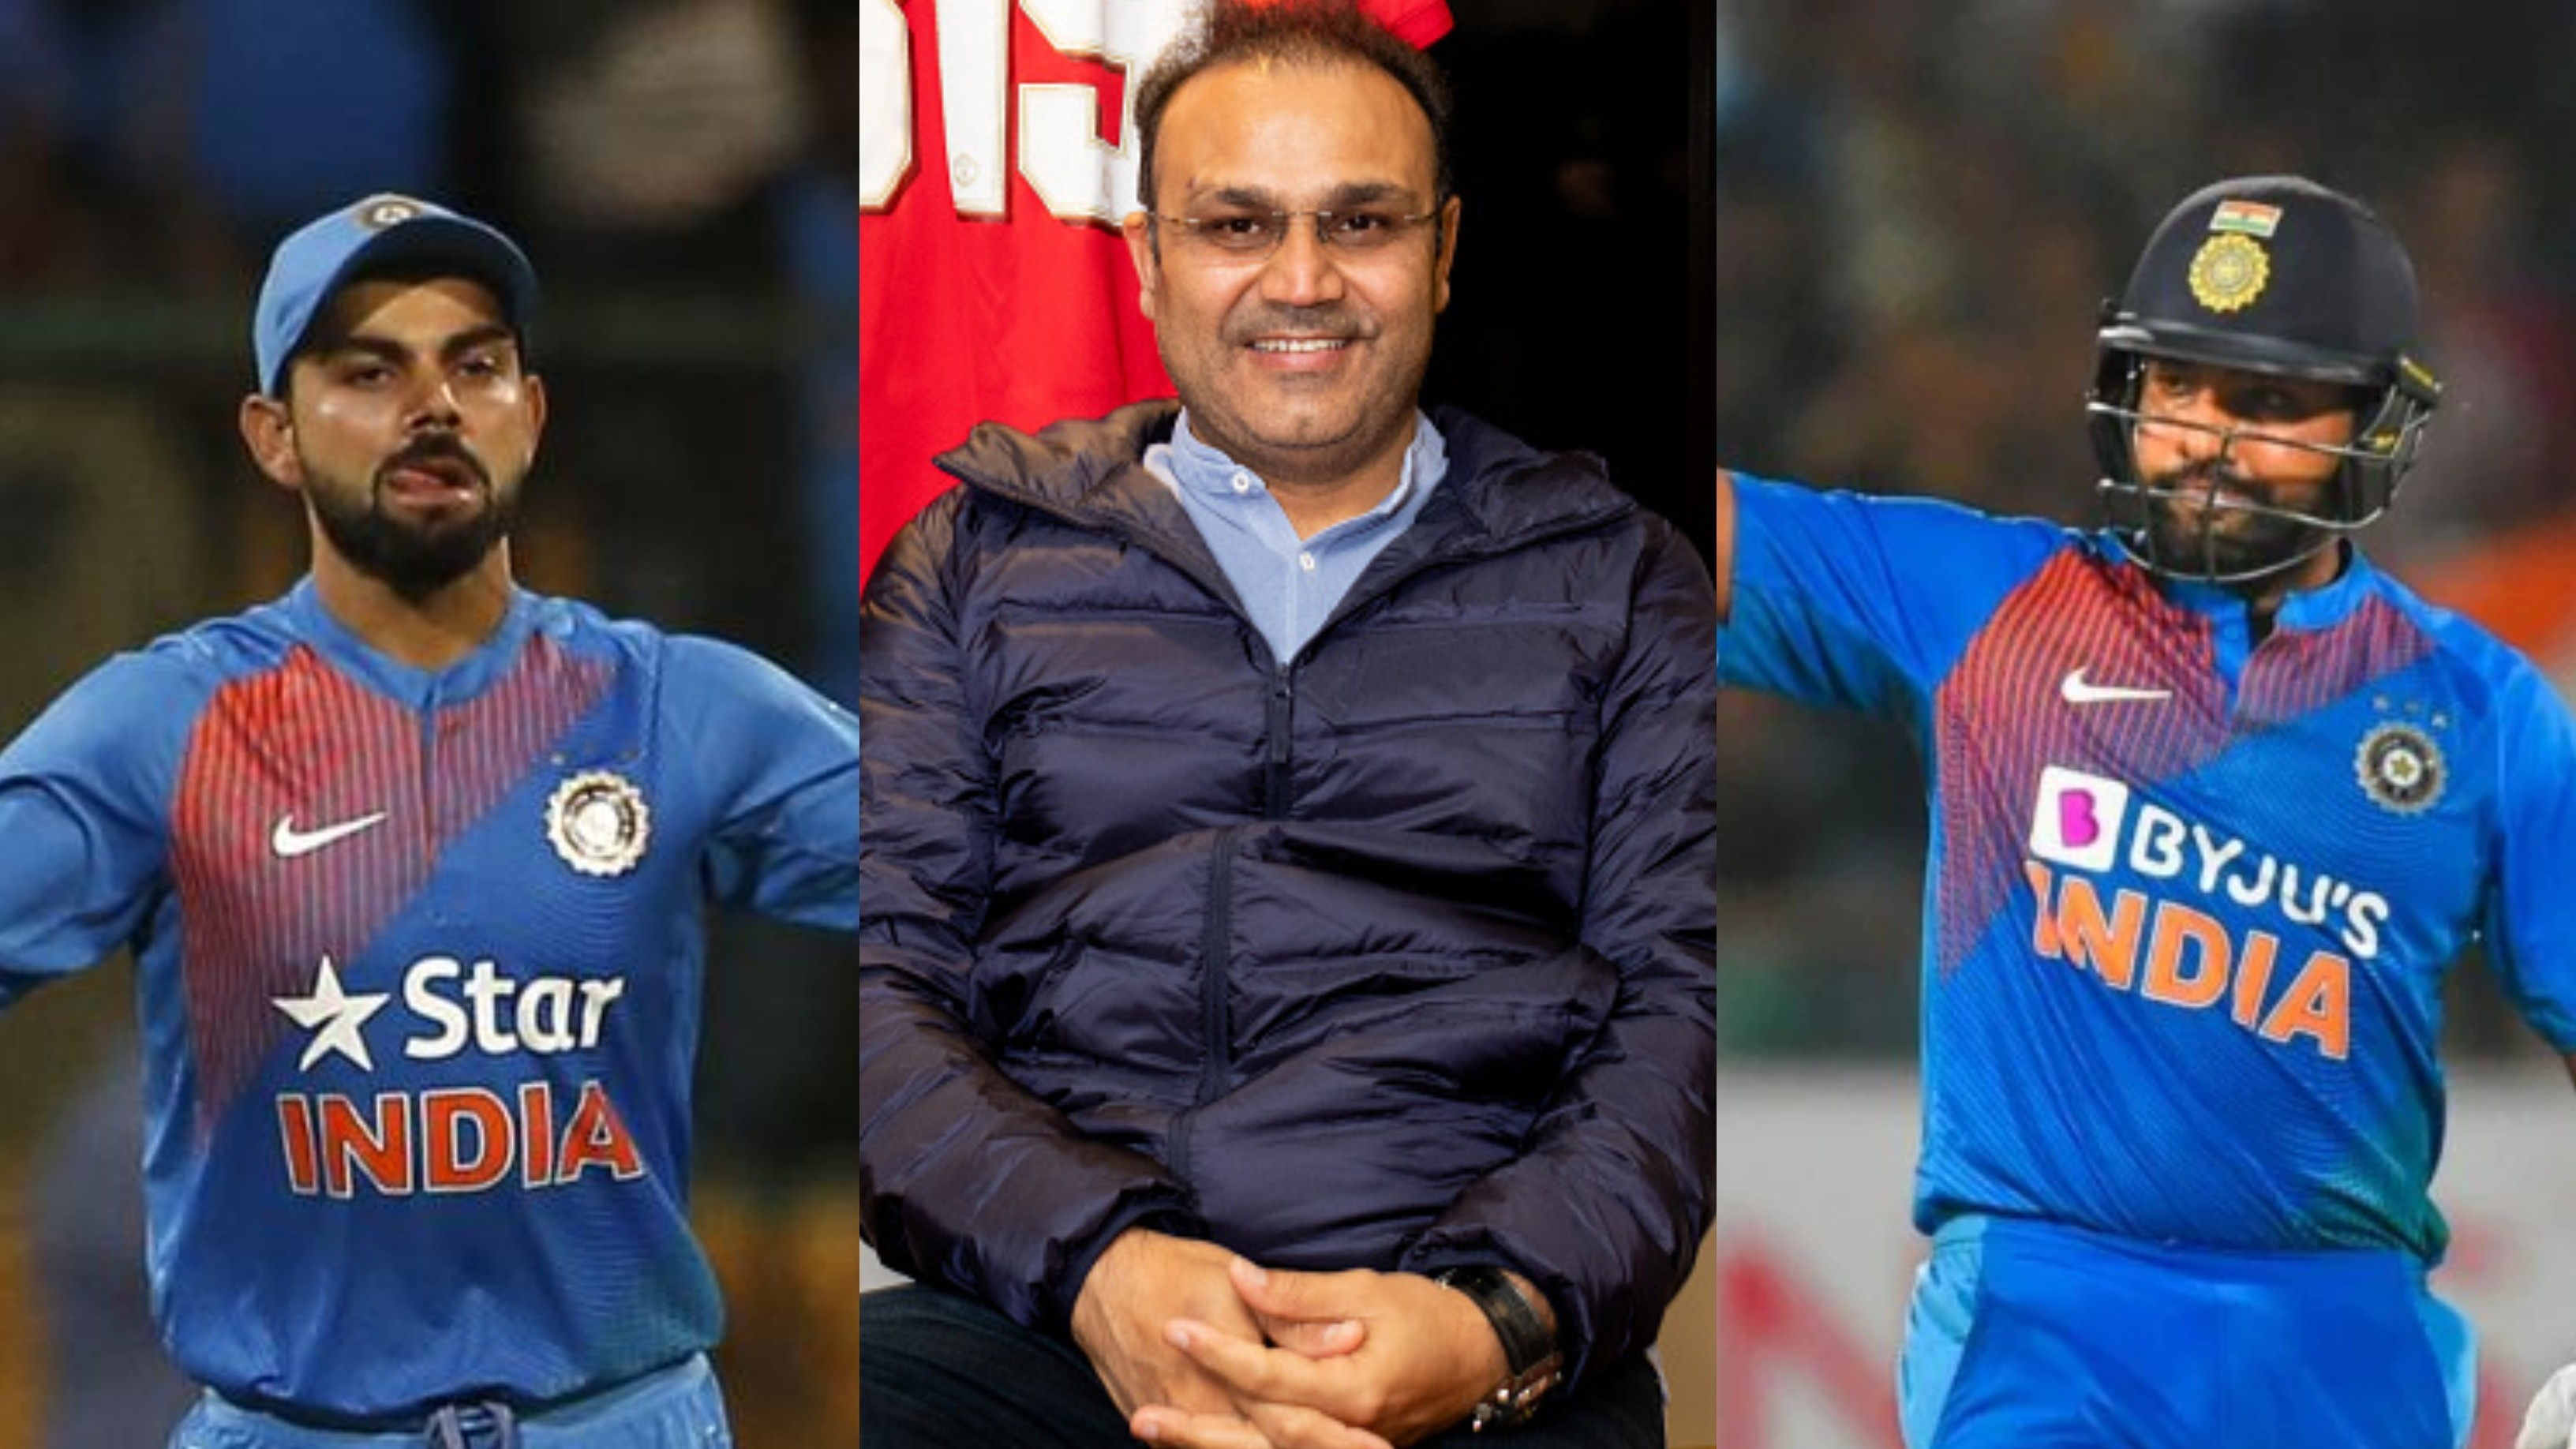 IND v BAN 2019: Virender Sehwag's words of praise for Rohit Sharma may leave Virat Kohli stunned